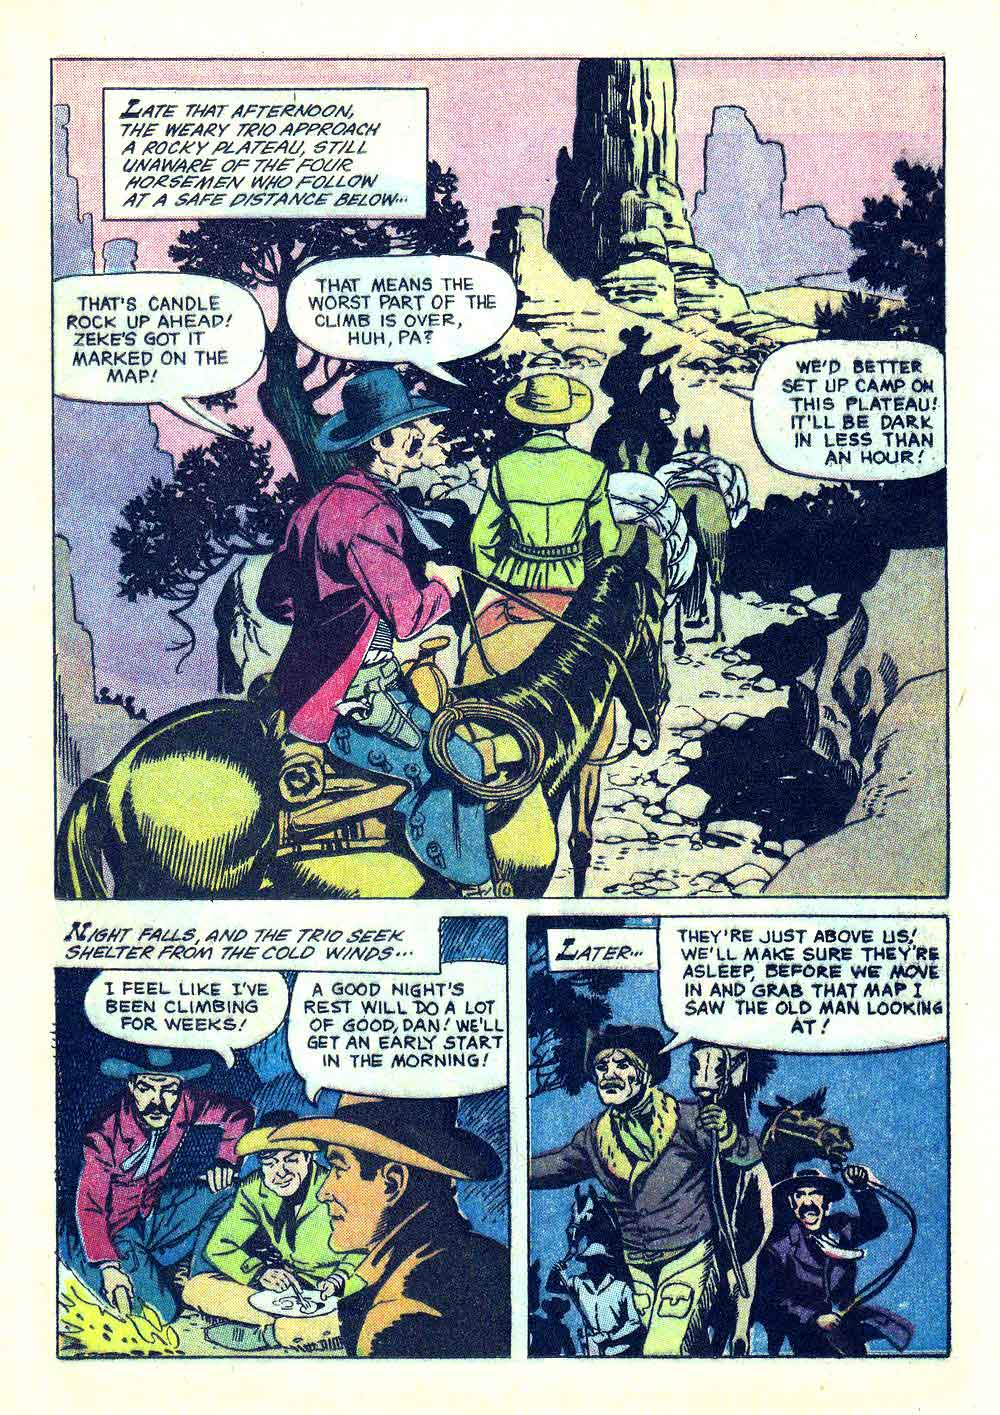 Rex Allen v1 #30 dell western comic book page art by Russ Manning